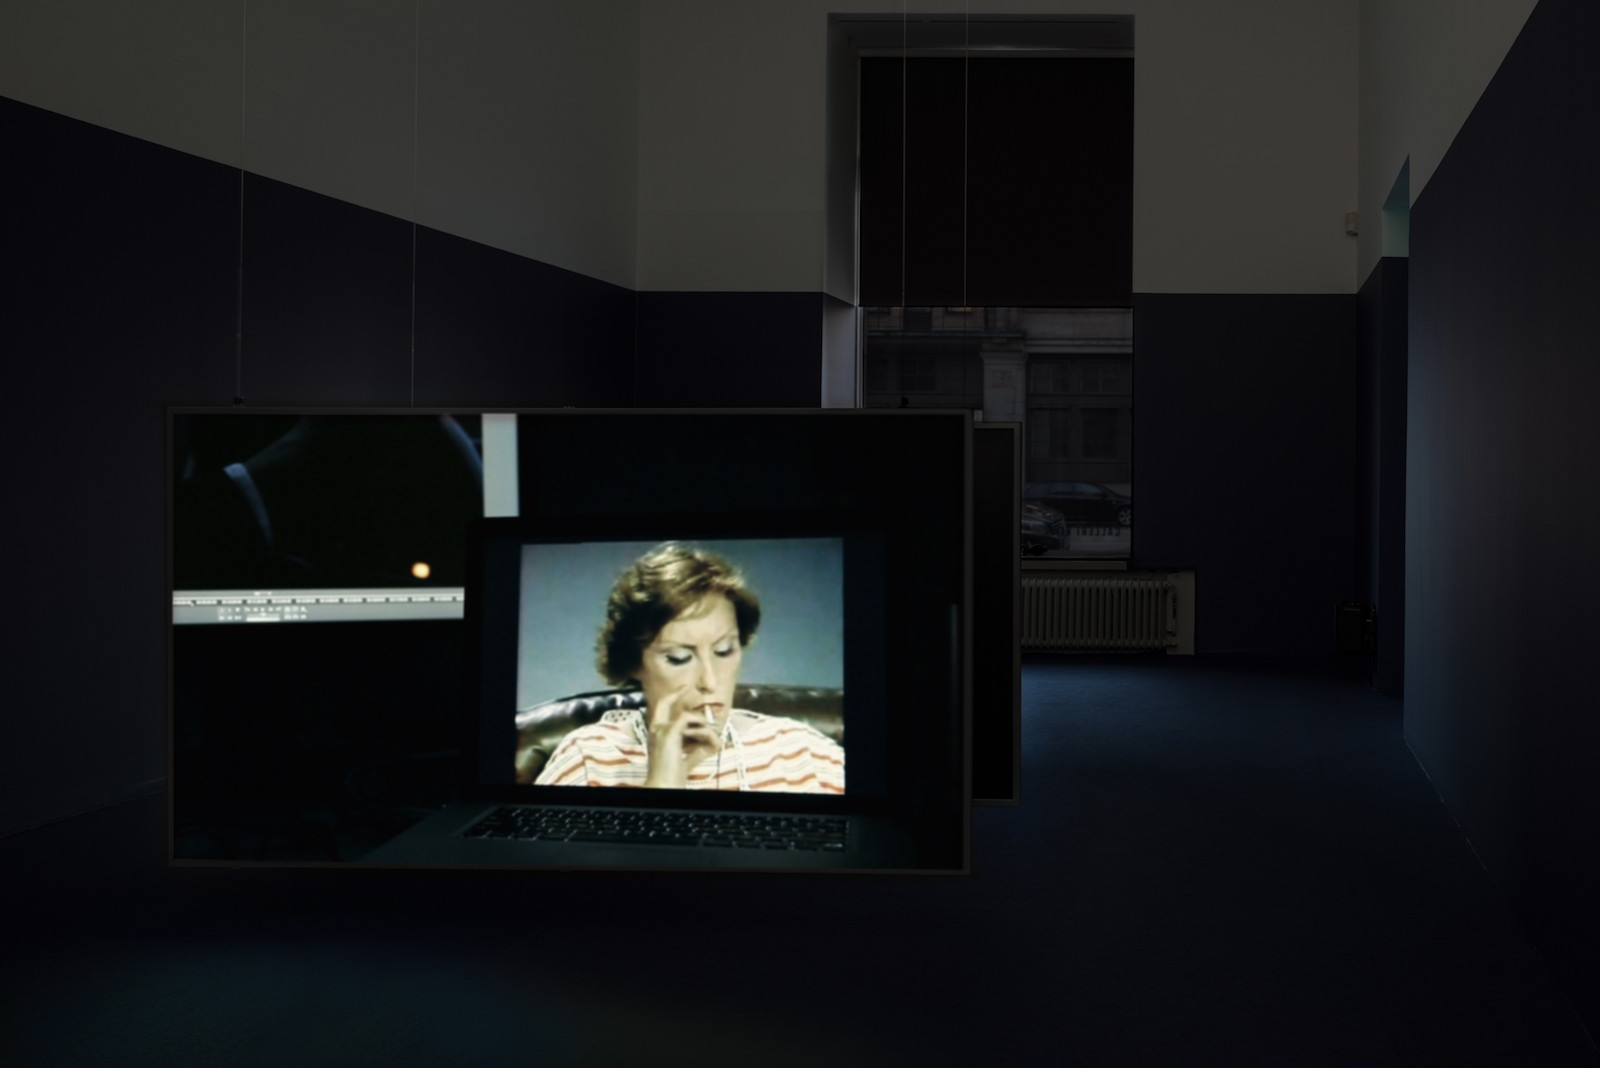 Sunsets, 2012, HD video, sound, 22 minutes 30 second. Installation view, For Every Word Has Its Own Shadow, Galleri Riis, Stockholm, 2015